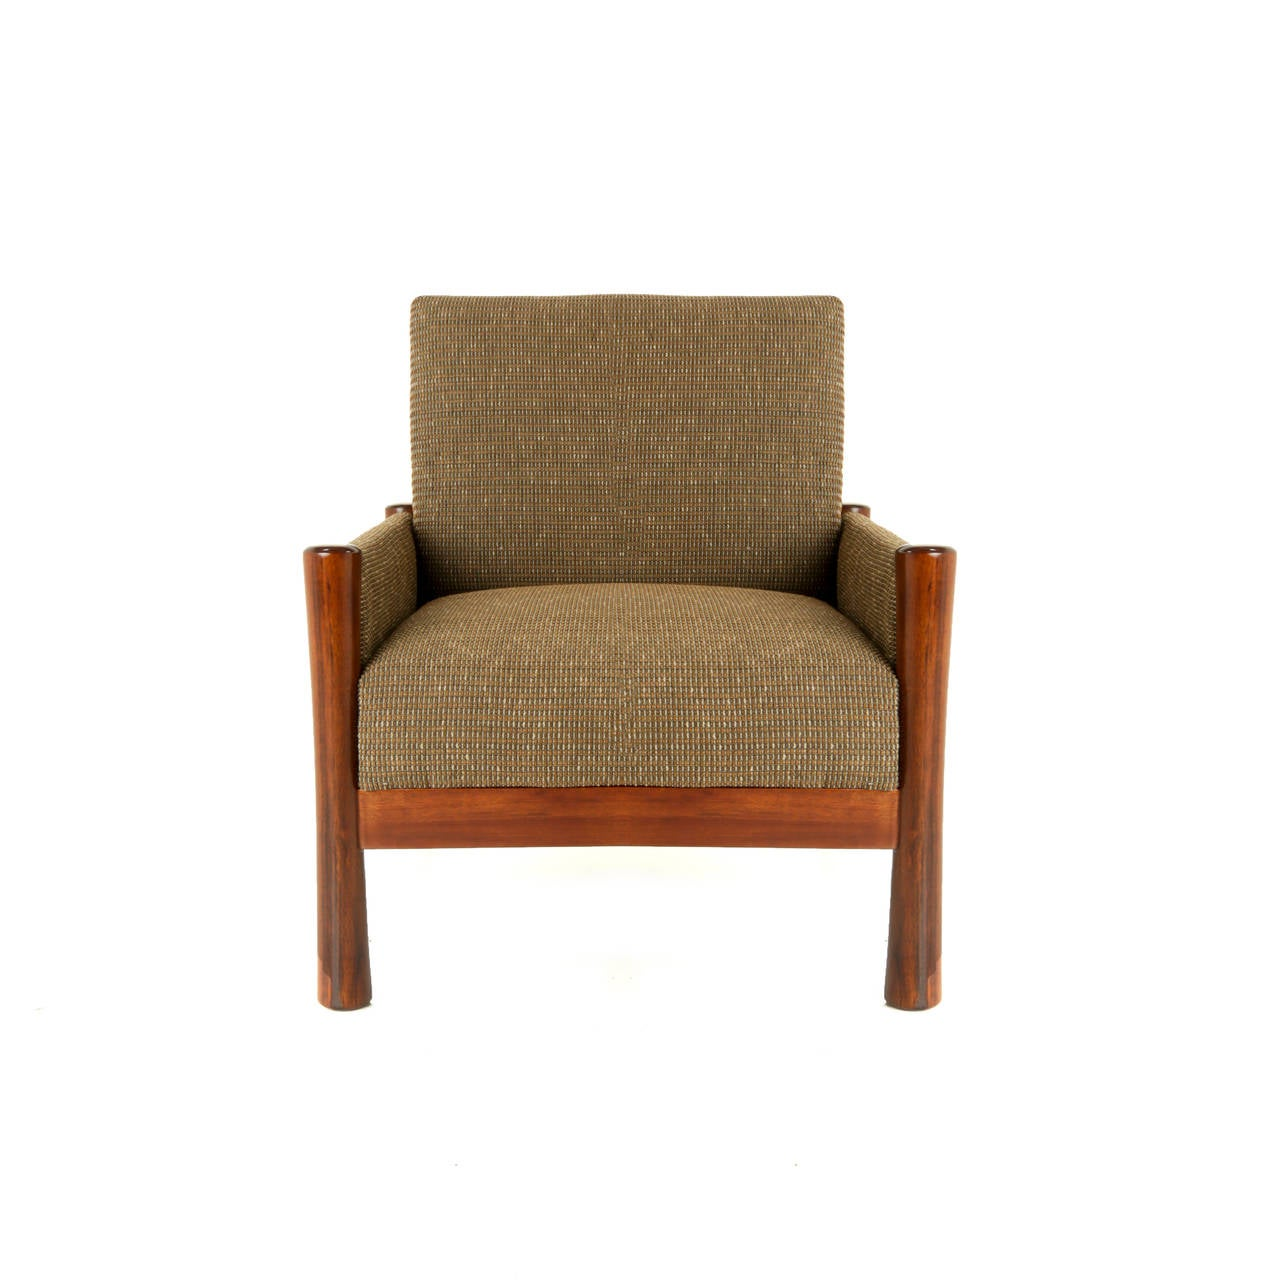 Wood Legs And Tweed Upholstered Arm Club Chair For Sale At 1stdibs. Full resolution  img, nominally Width 1280 Height 1280 pixels, img with #A94F22.